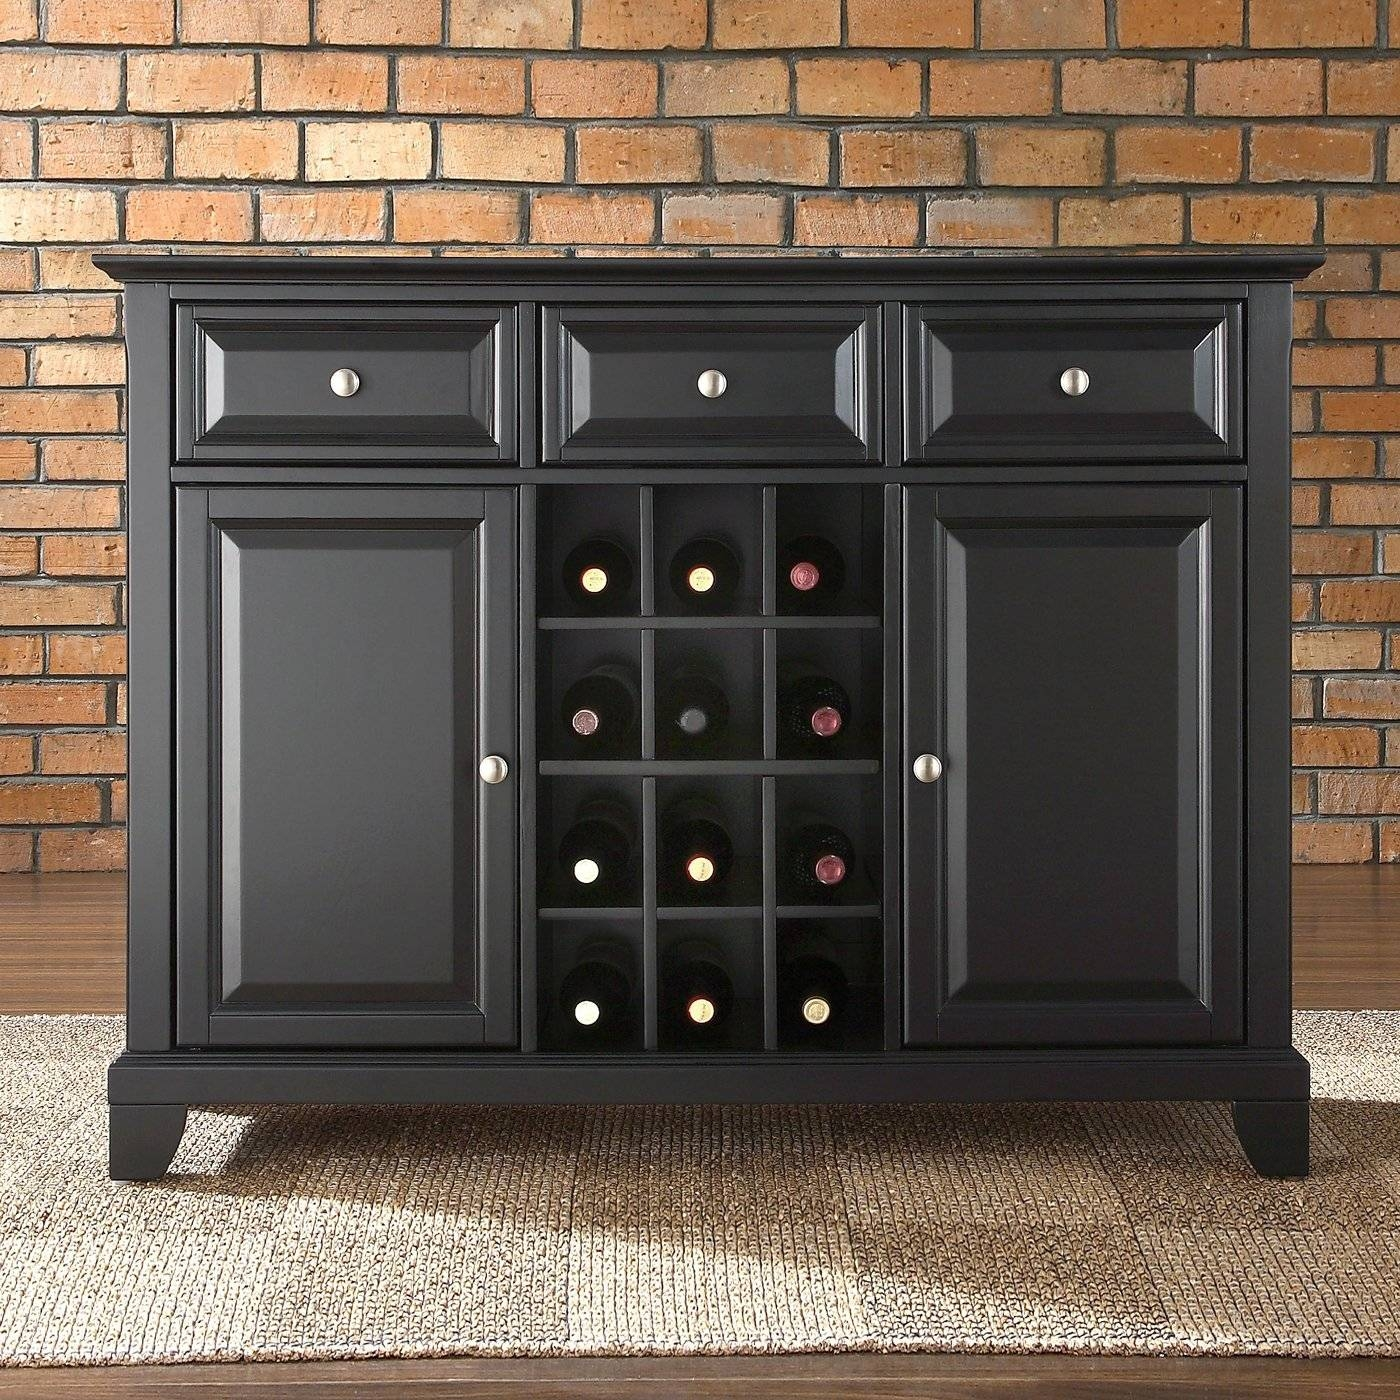 Furniture: Unique White Carpet With Buffet Sideboard And Brick Regarding Best And Newest Black Buffet Sideboards (#4 of 15)